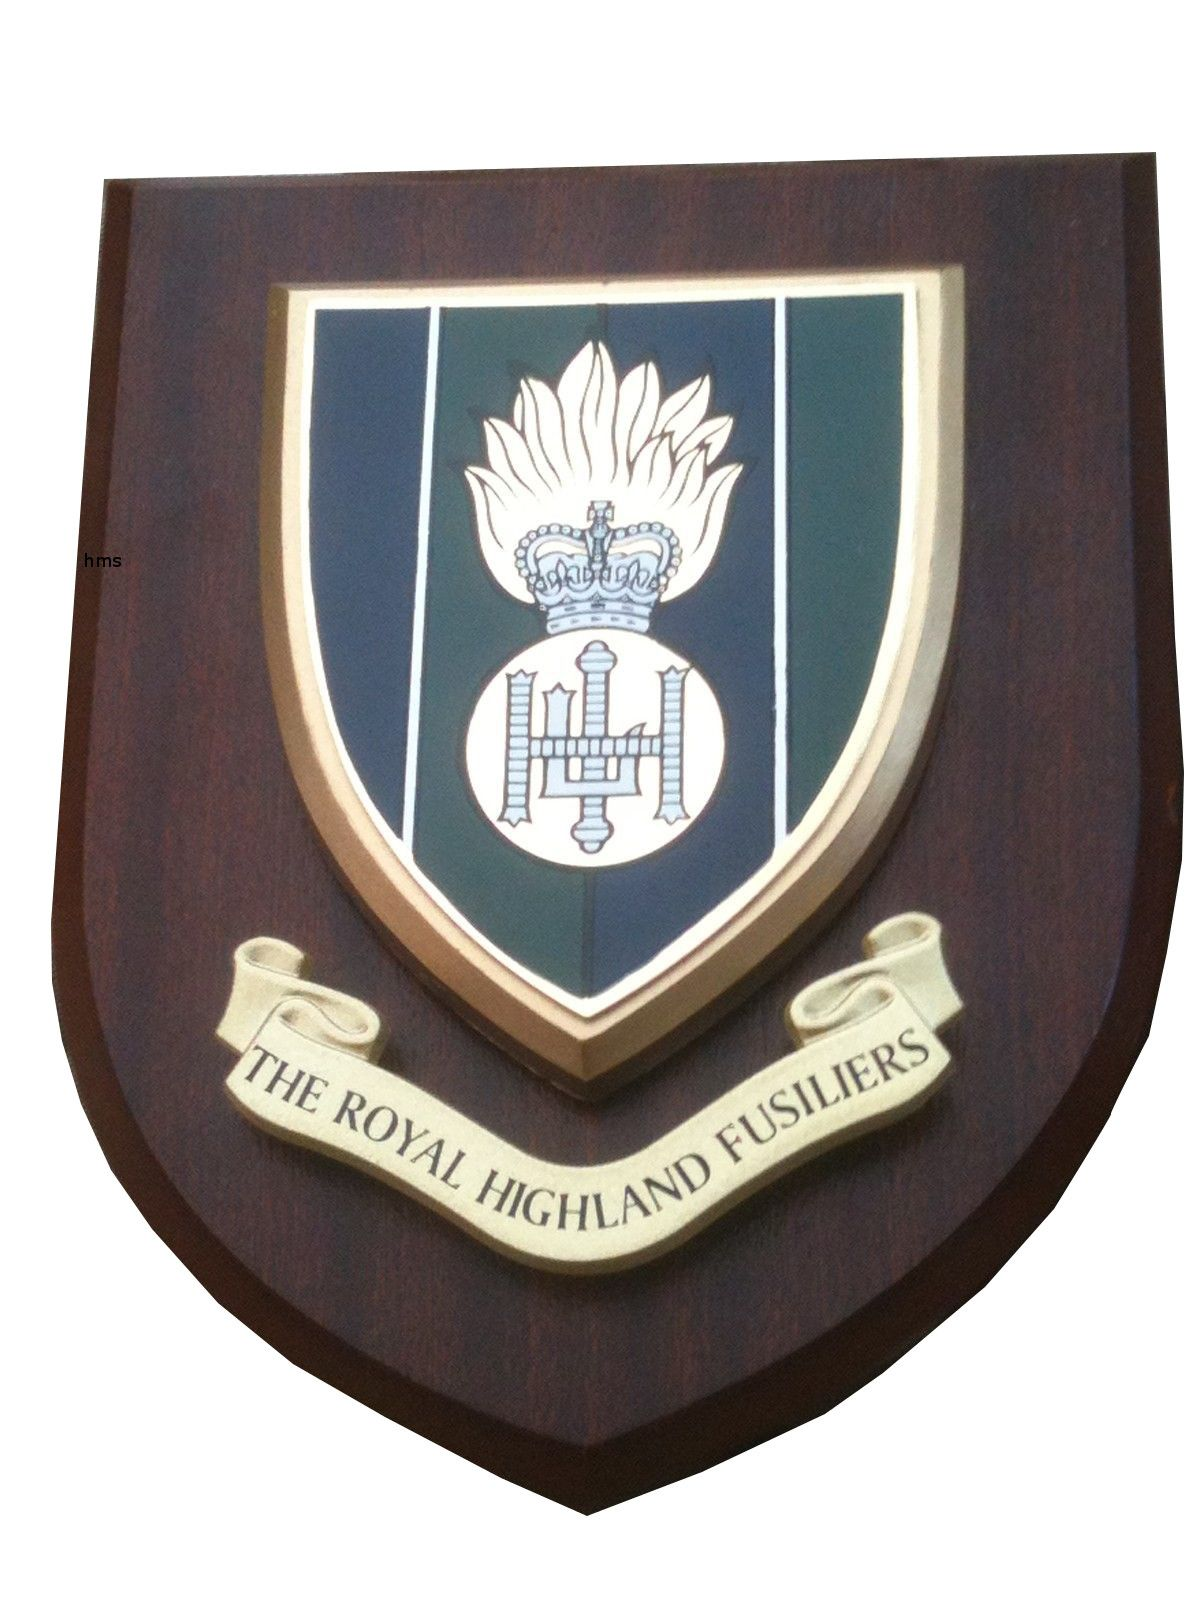 Royal Highland Fusiliers Regimental Military Wall Plaque